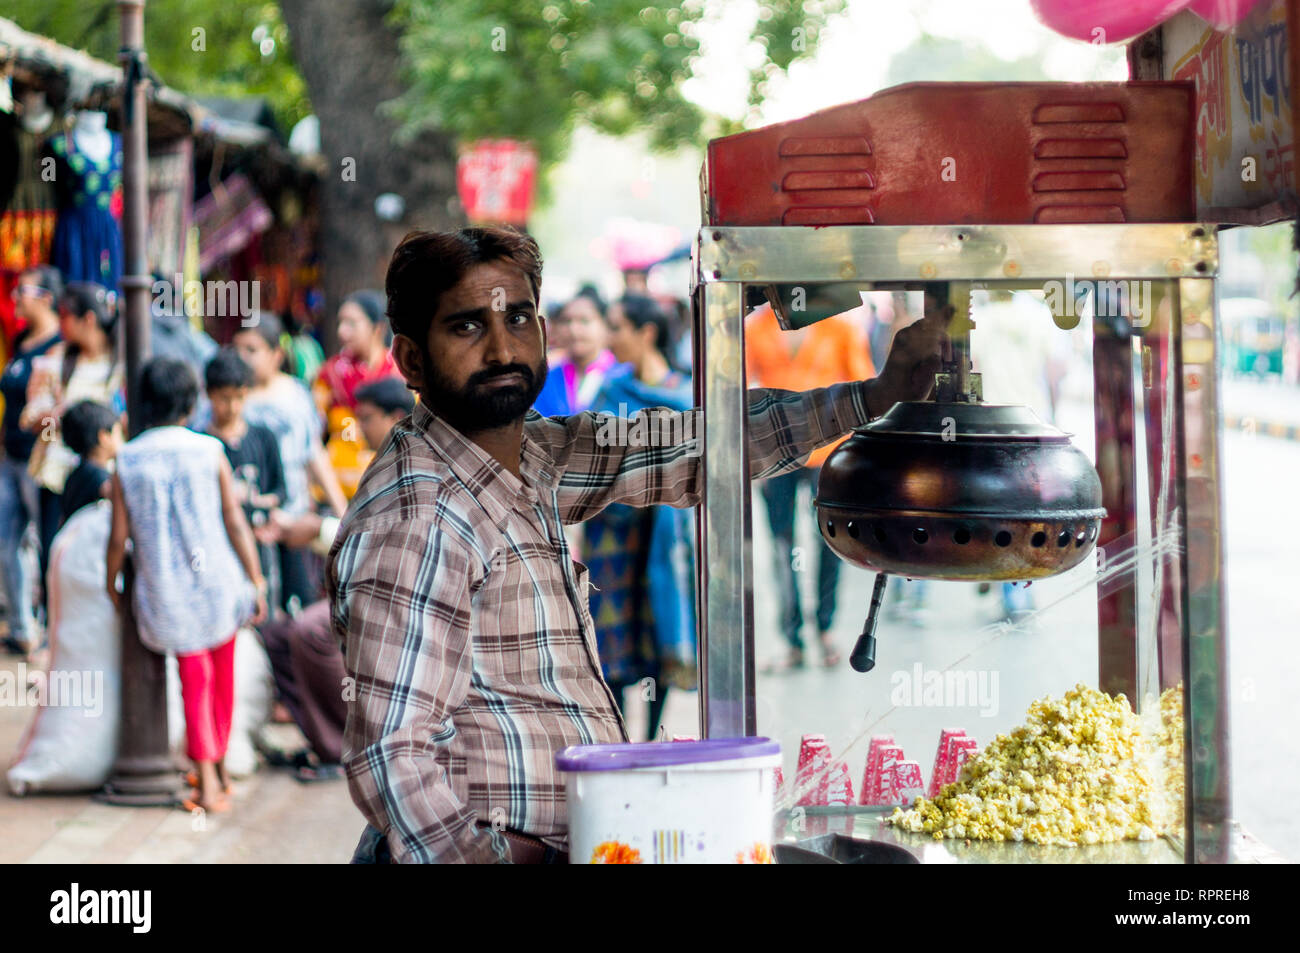 Streetside popcorn seller with a popcorn machine cart in Ahmedabad  - Stock Image